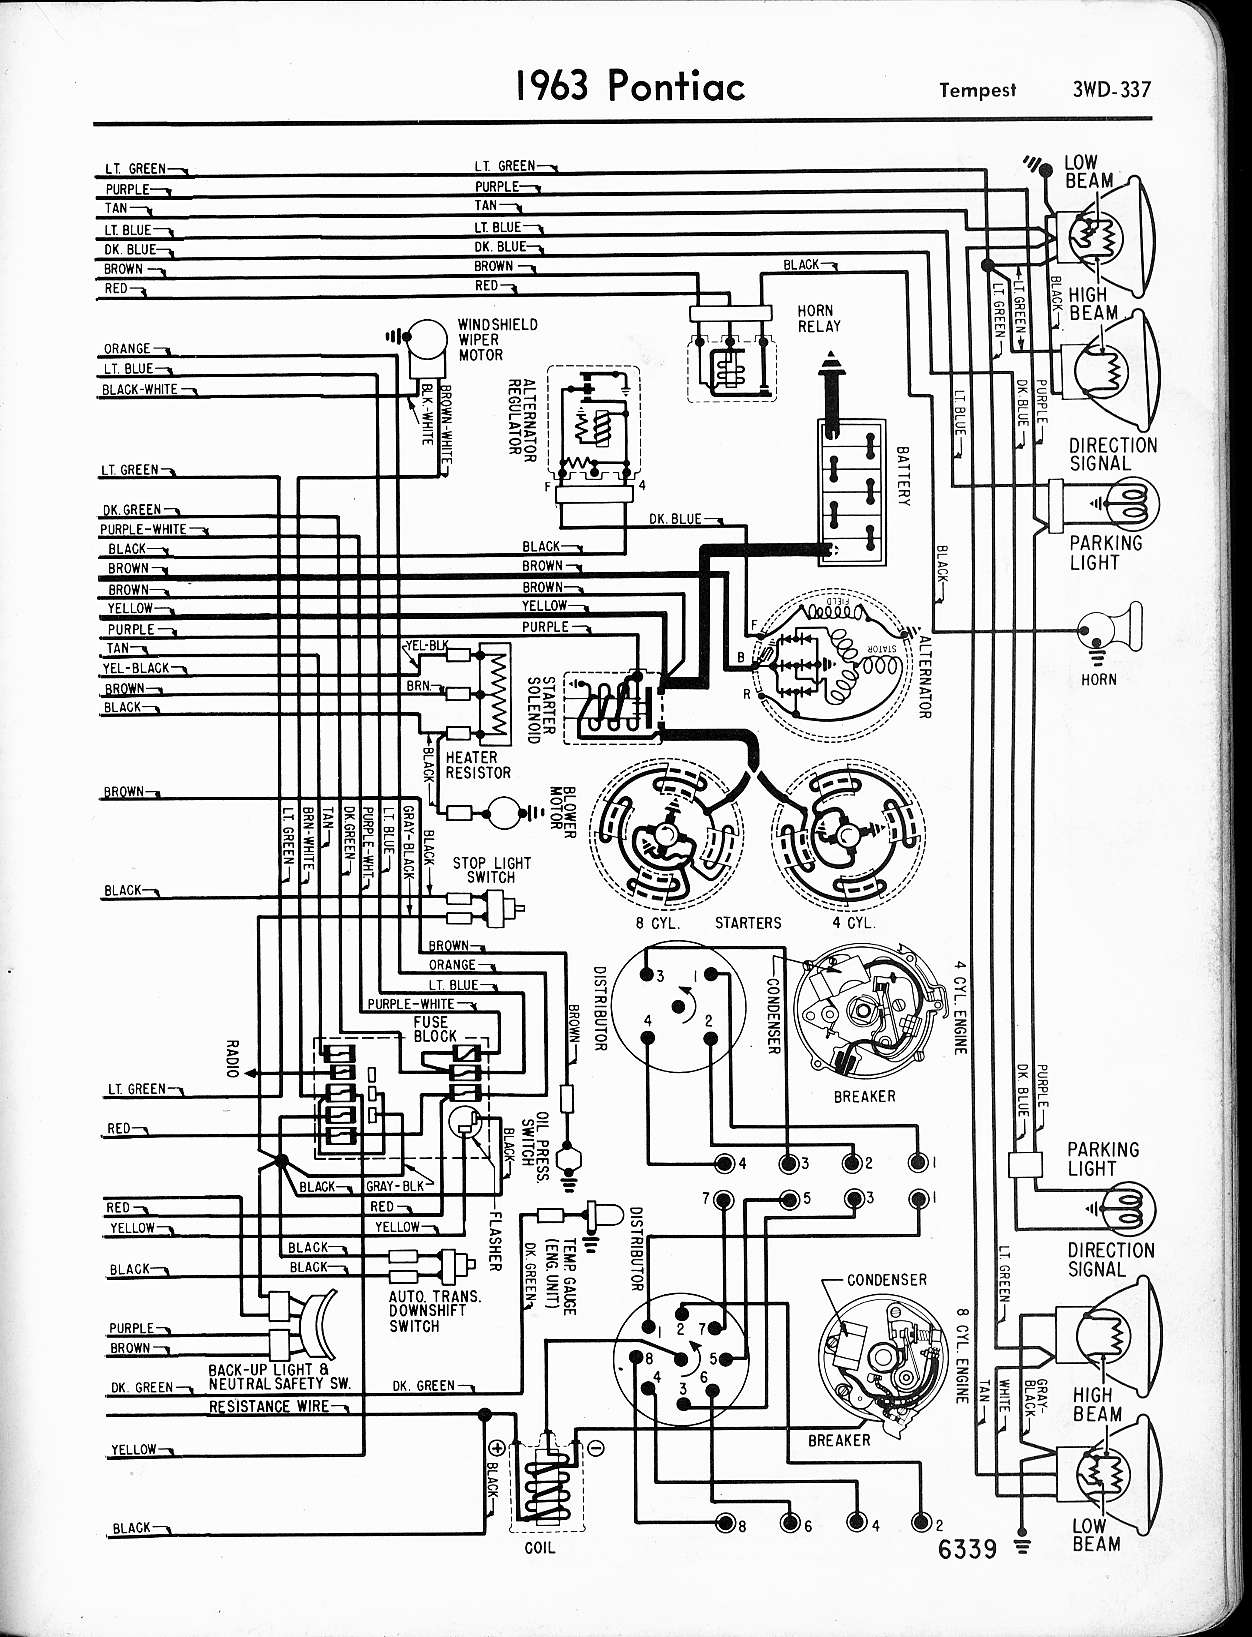 67 gto fuse box wiring library Motorguide Mhf15001t Rotary Switch 1967 pontiac gto fuse box layout wiring diagrams u2022 rh laurafinlay co uk